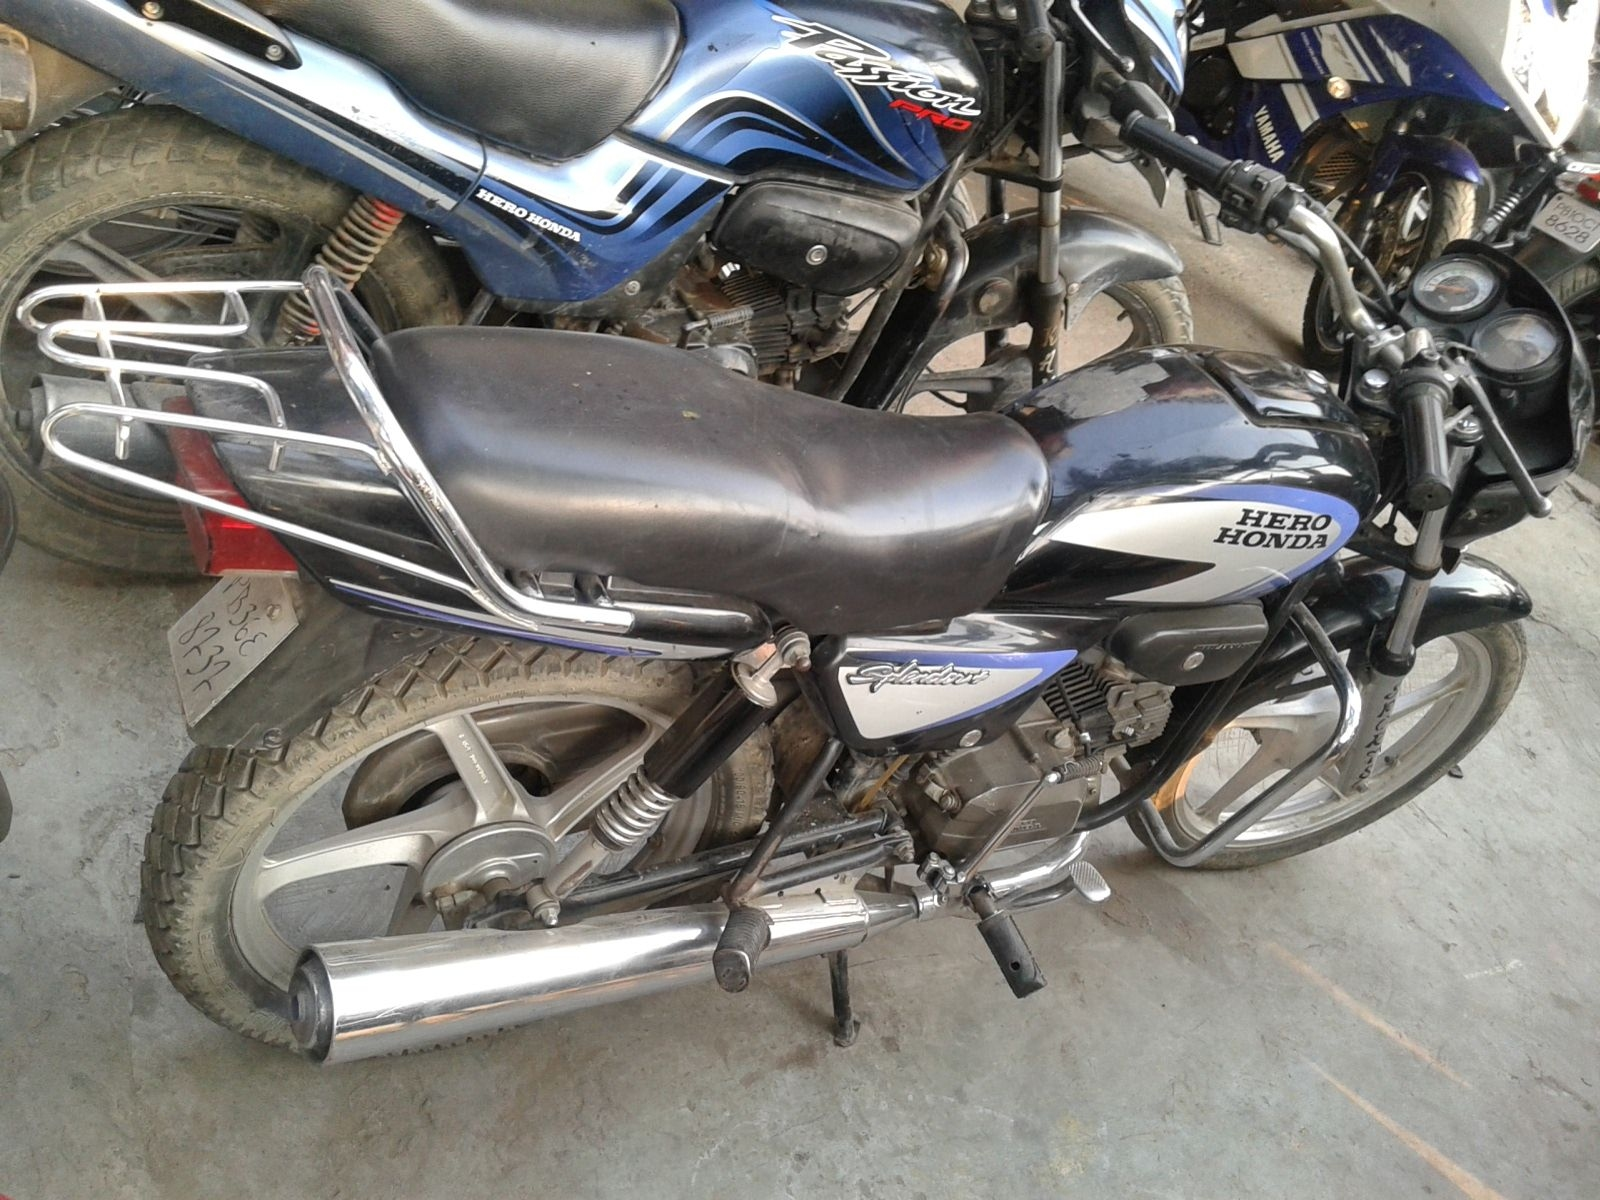 Hero Splendor Plus 100 2009